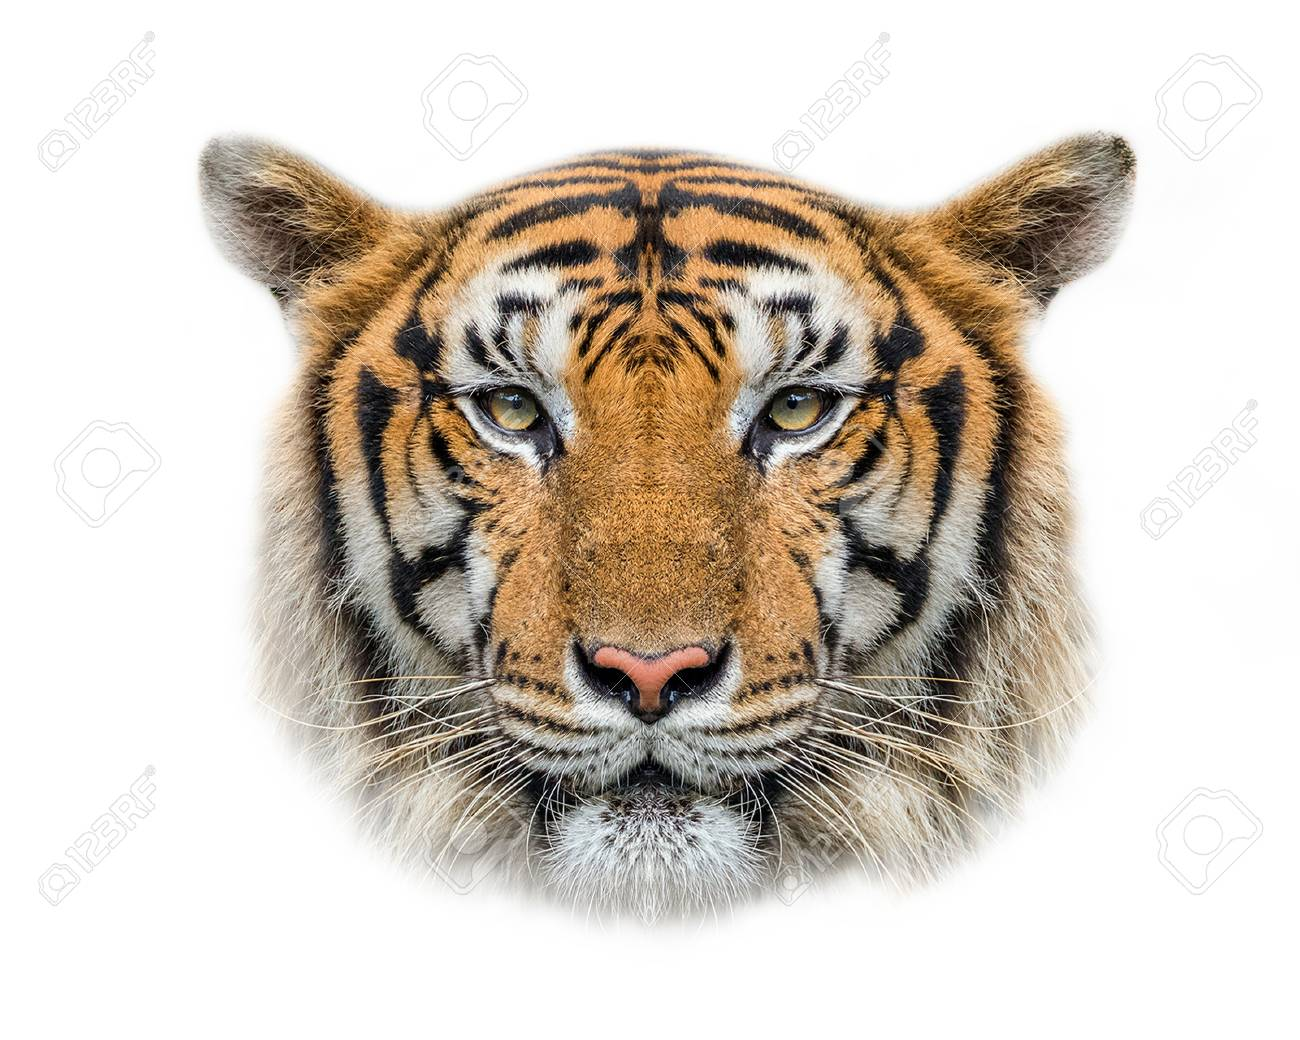 tiger s face on